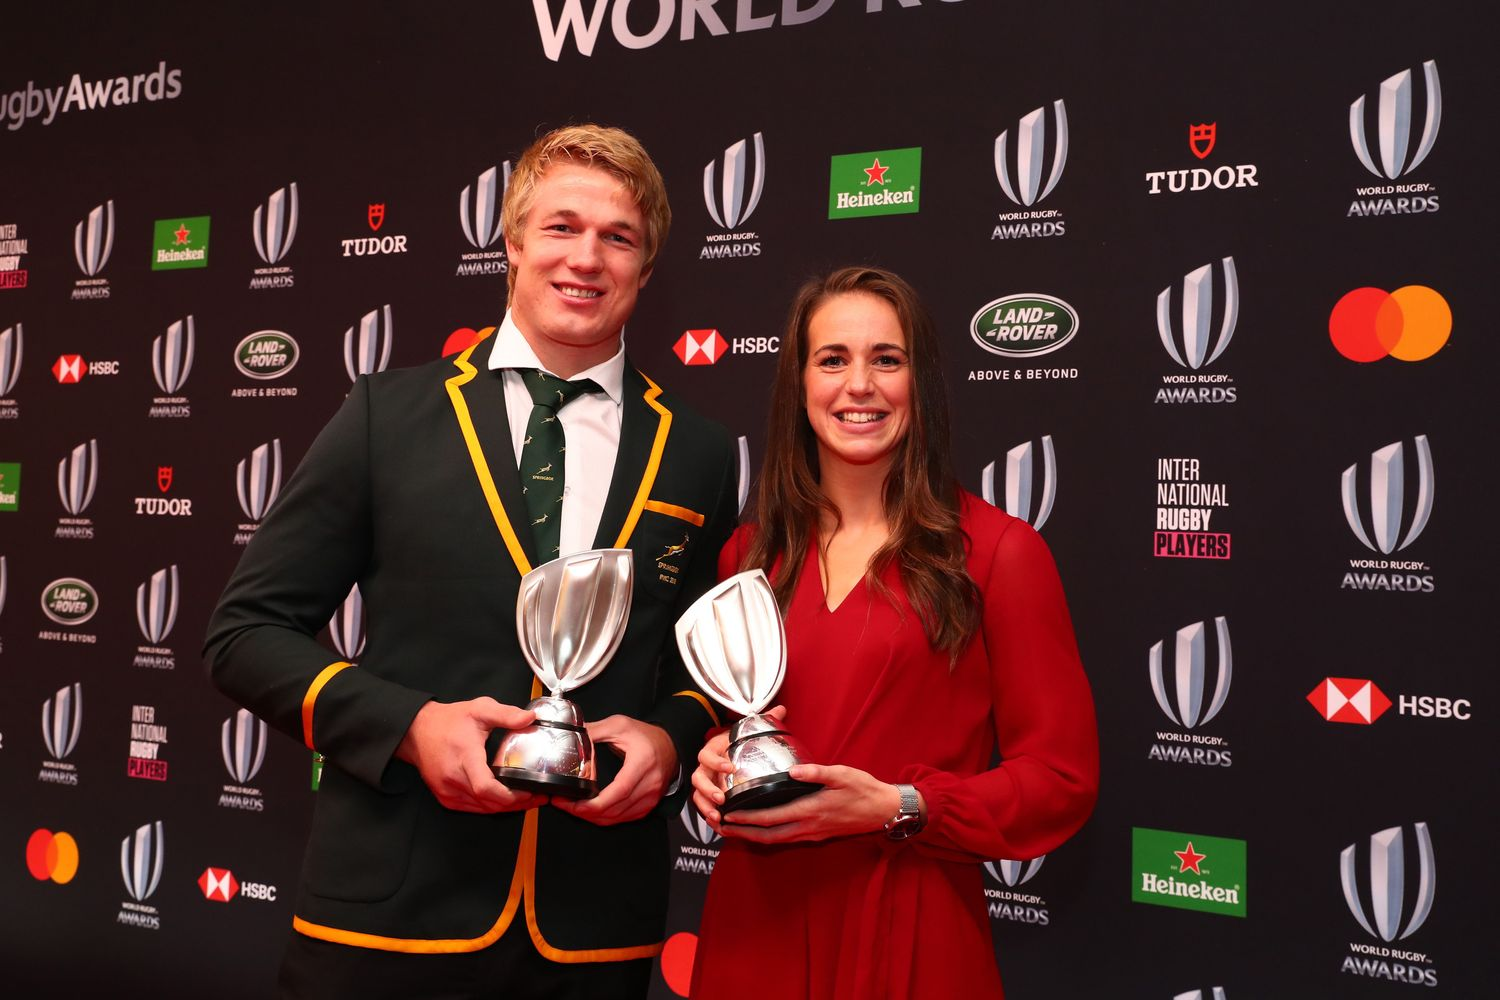 World Rugby Awards